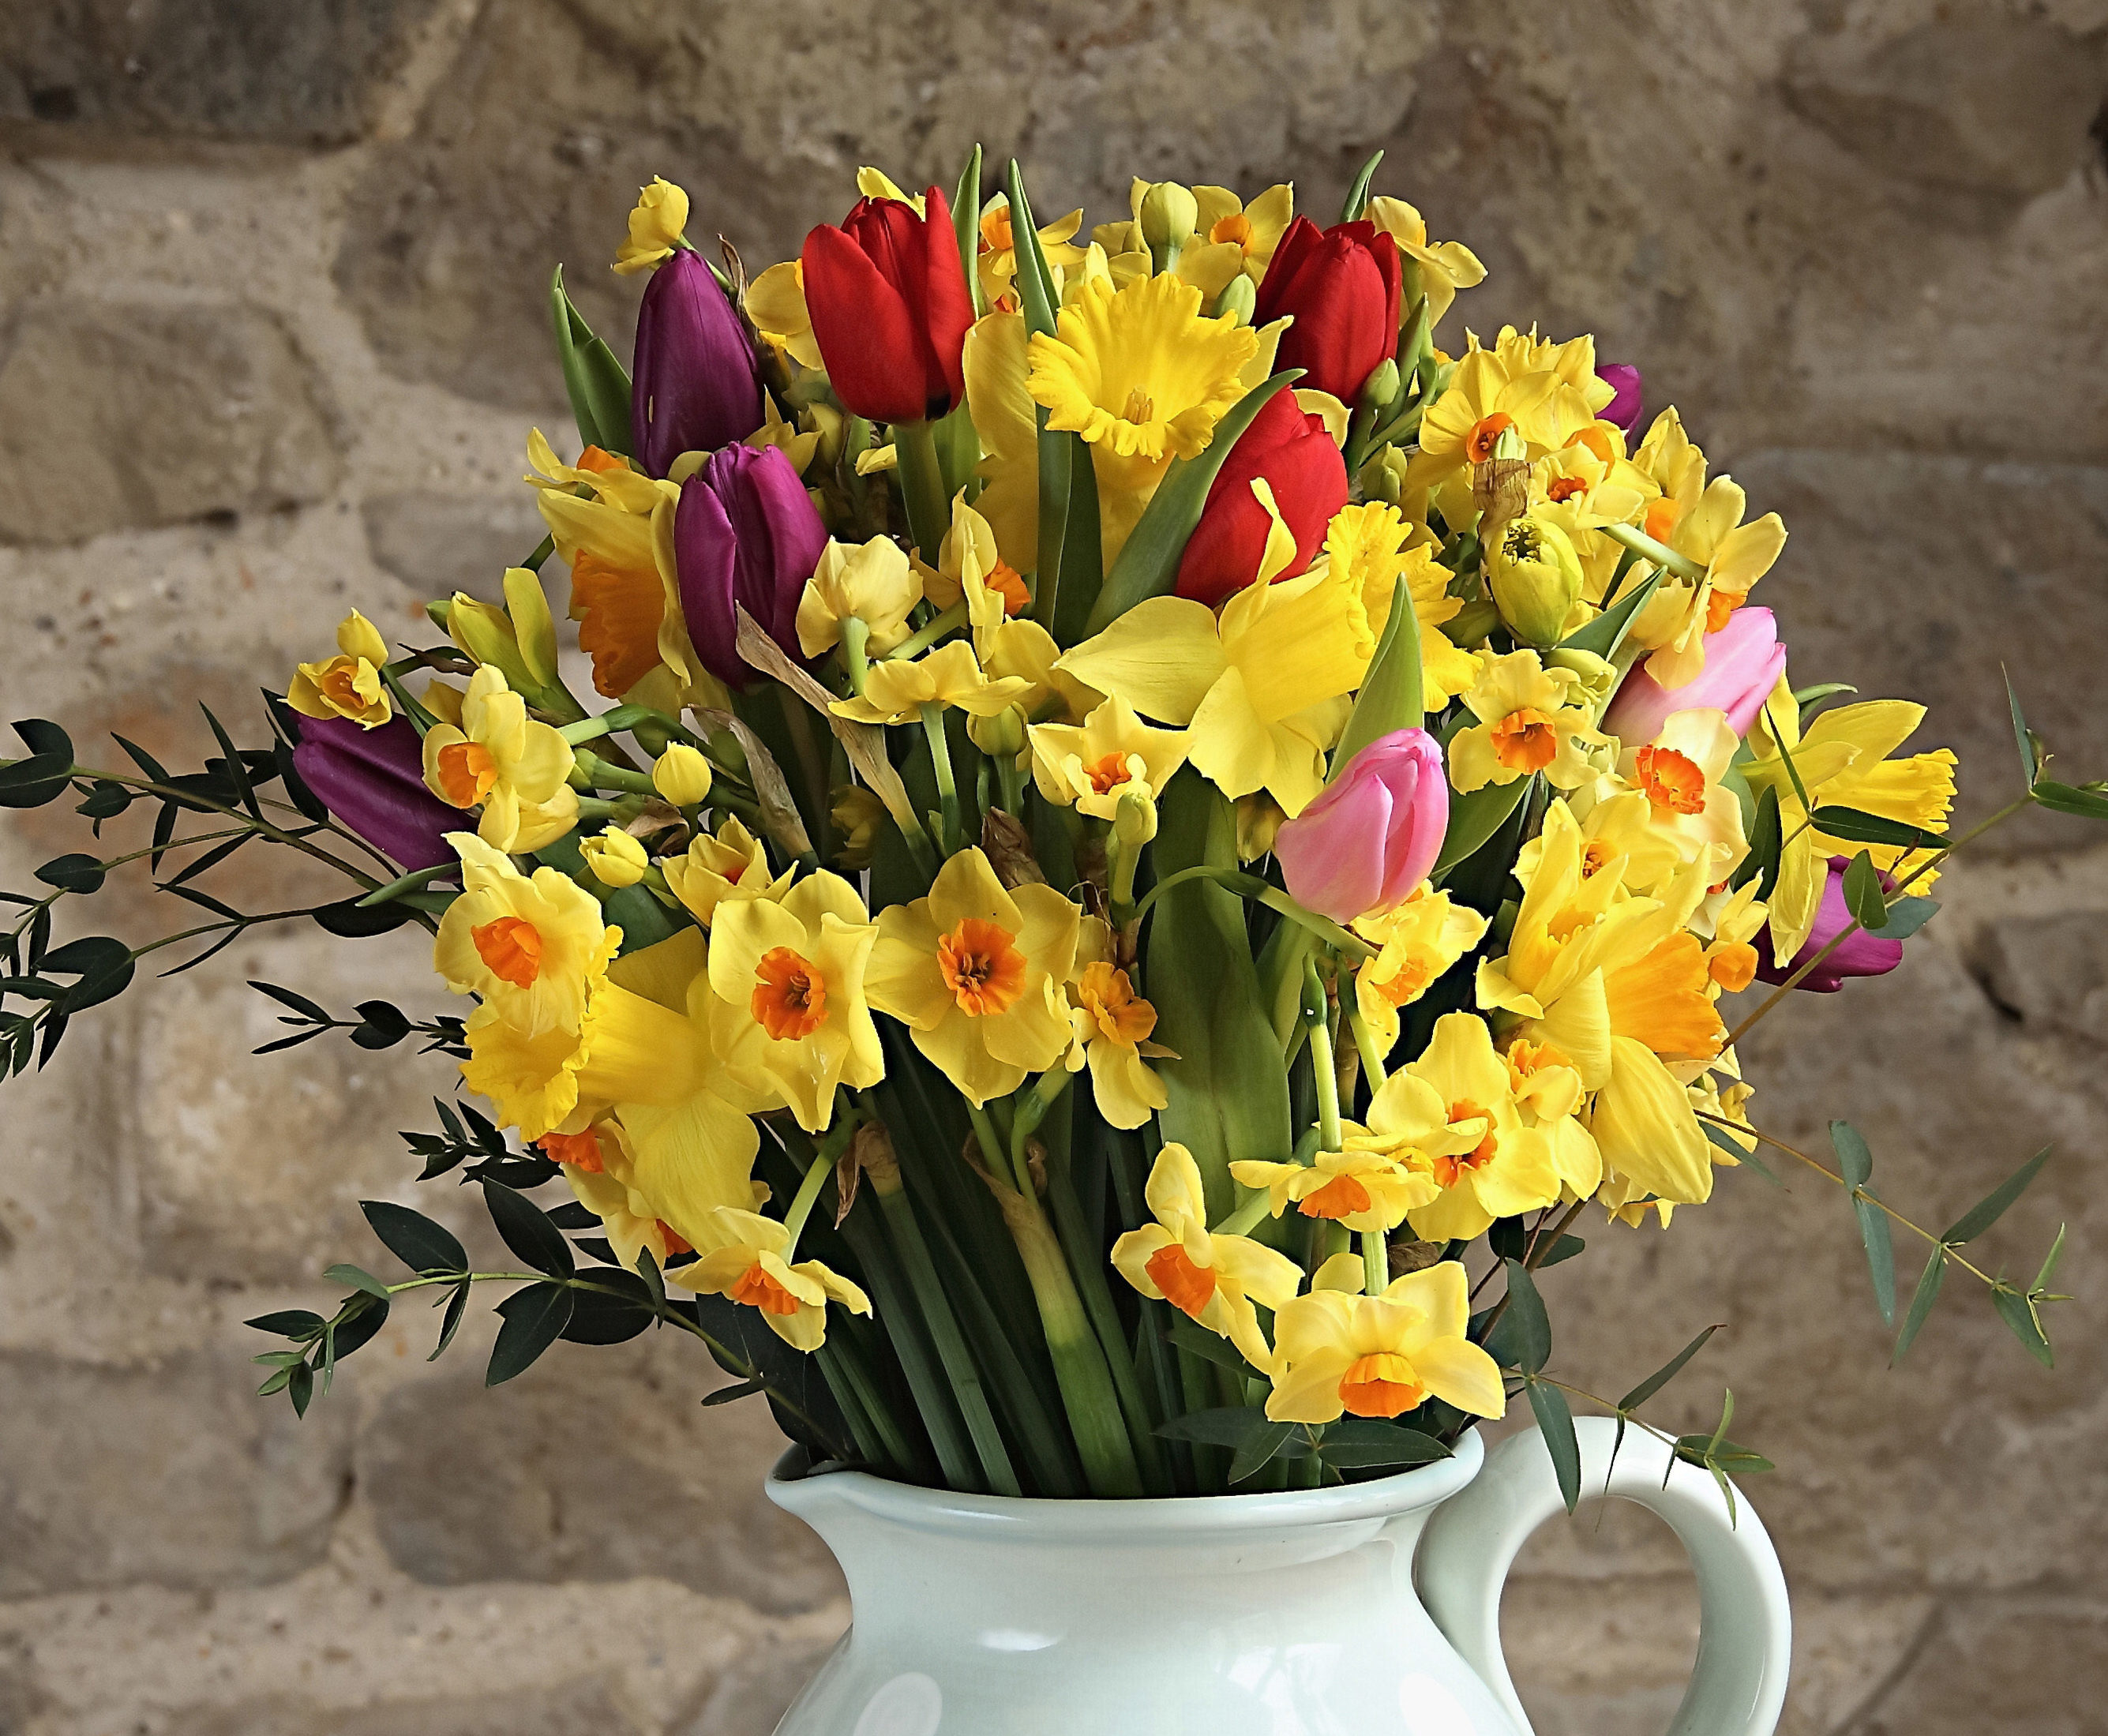 Flower subscription cornish blooms subscription flowers summer mixed cornish flower bunch daffodils tulips and narcissi izmirmasajfo